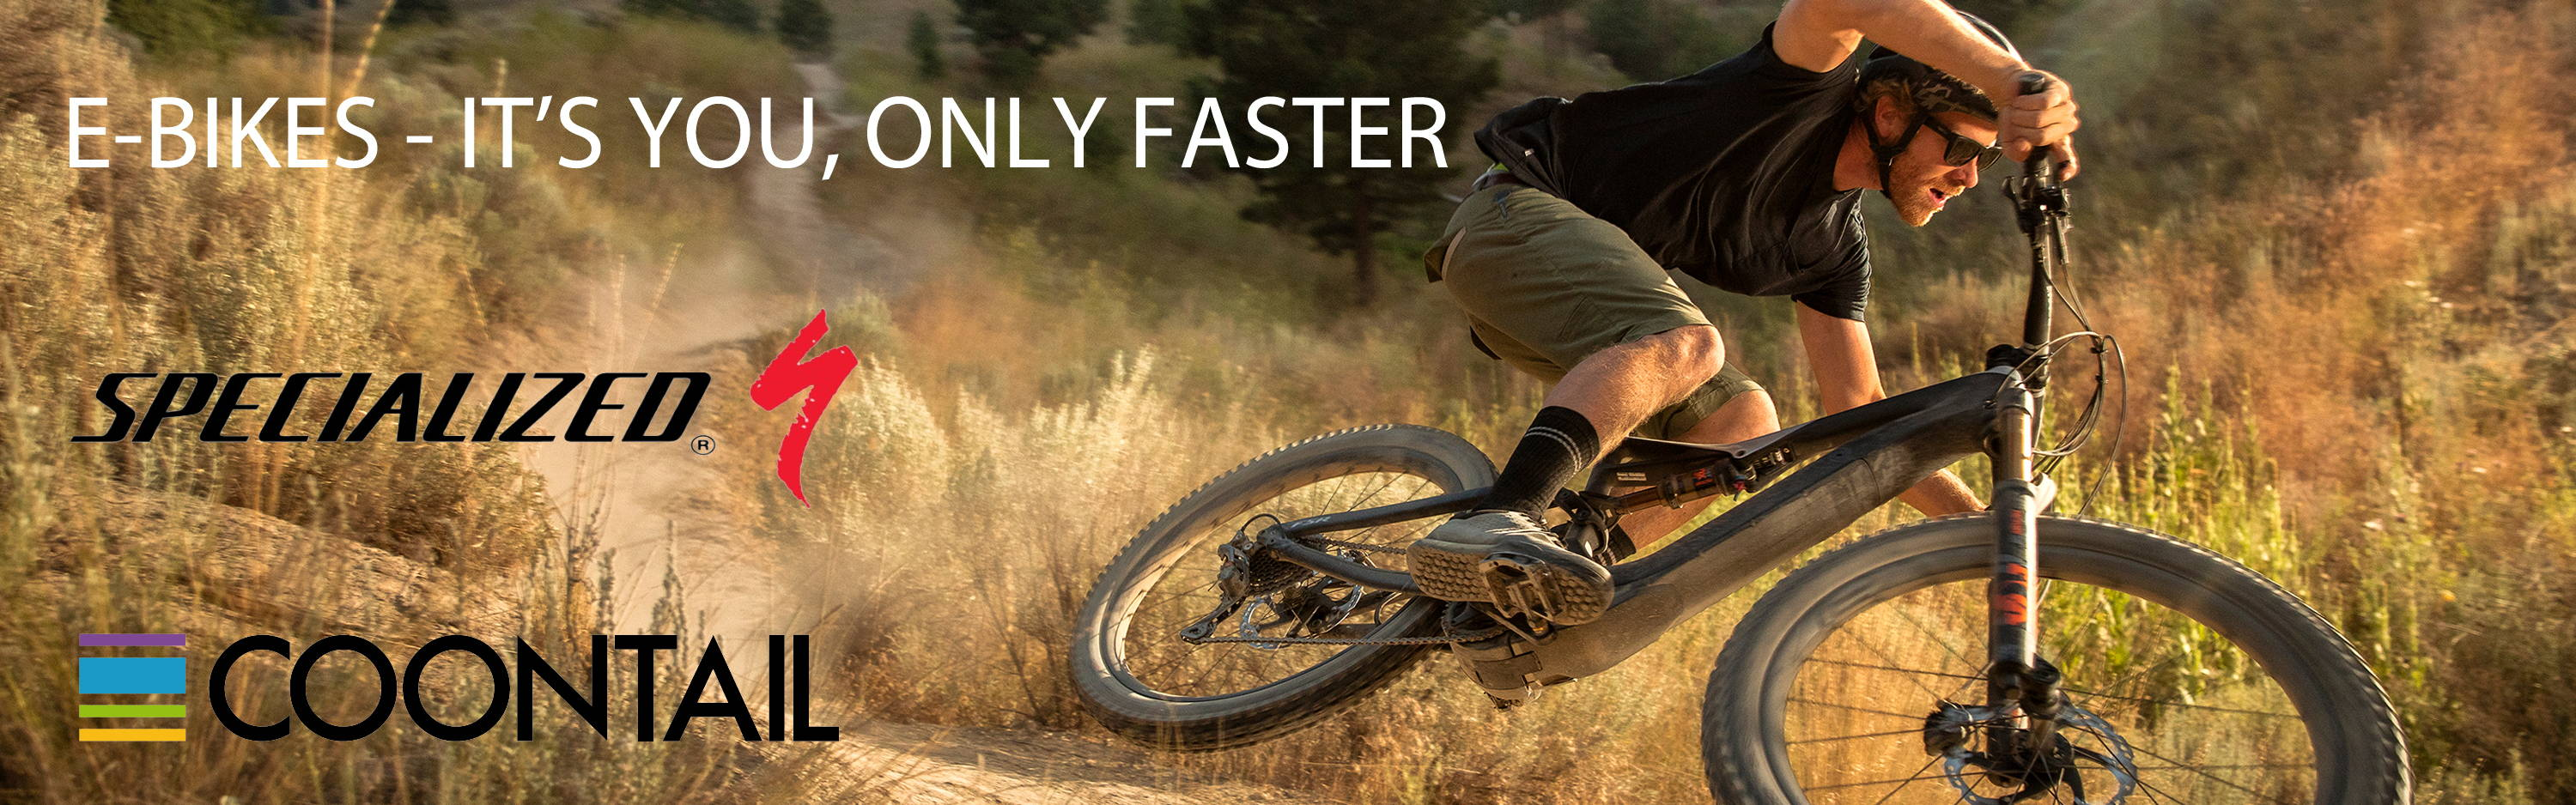 wisconsin electric bicycle dealer